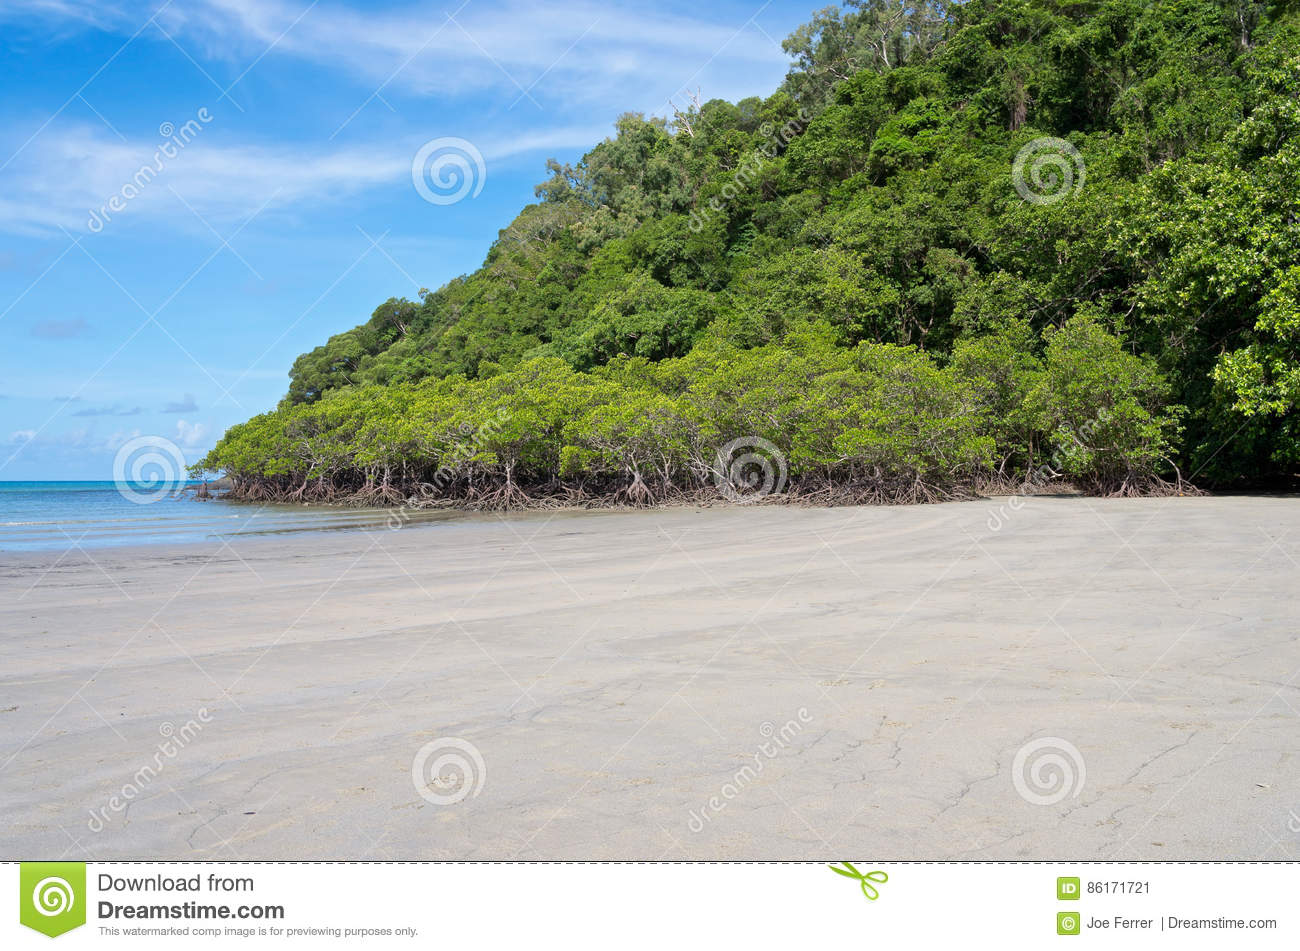 Forest and Beach